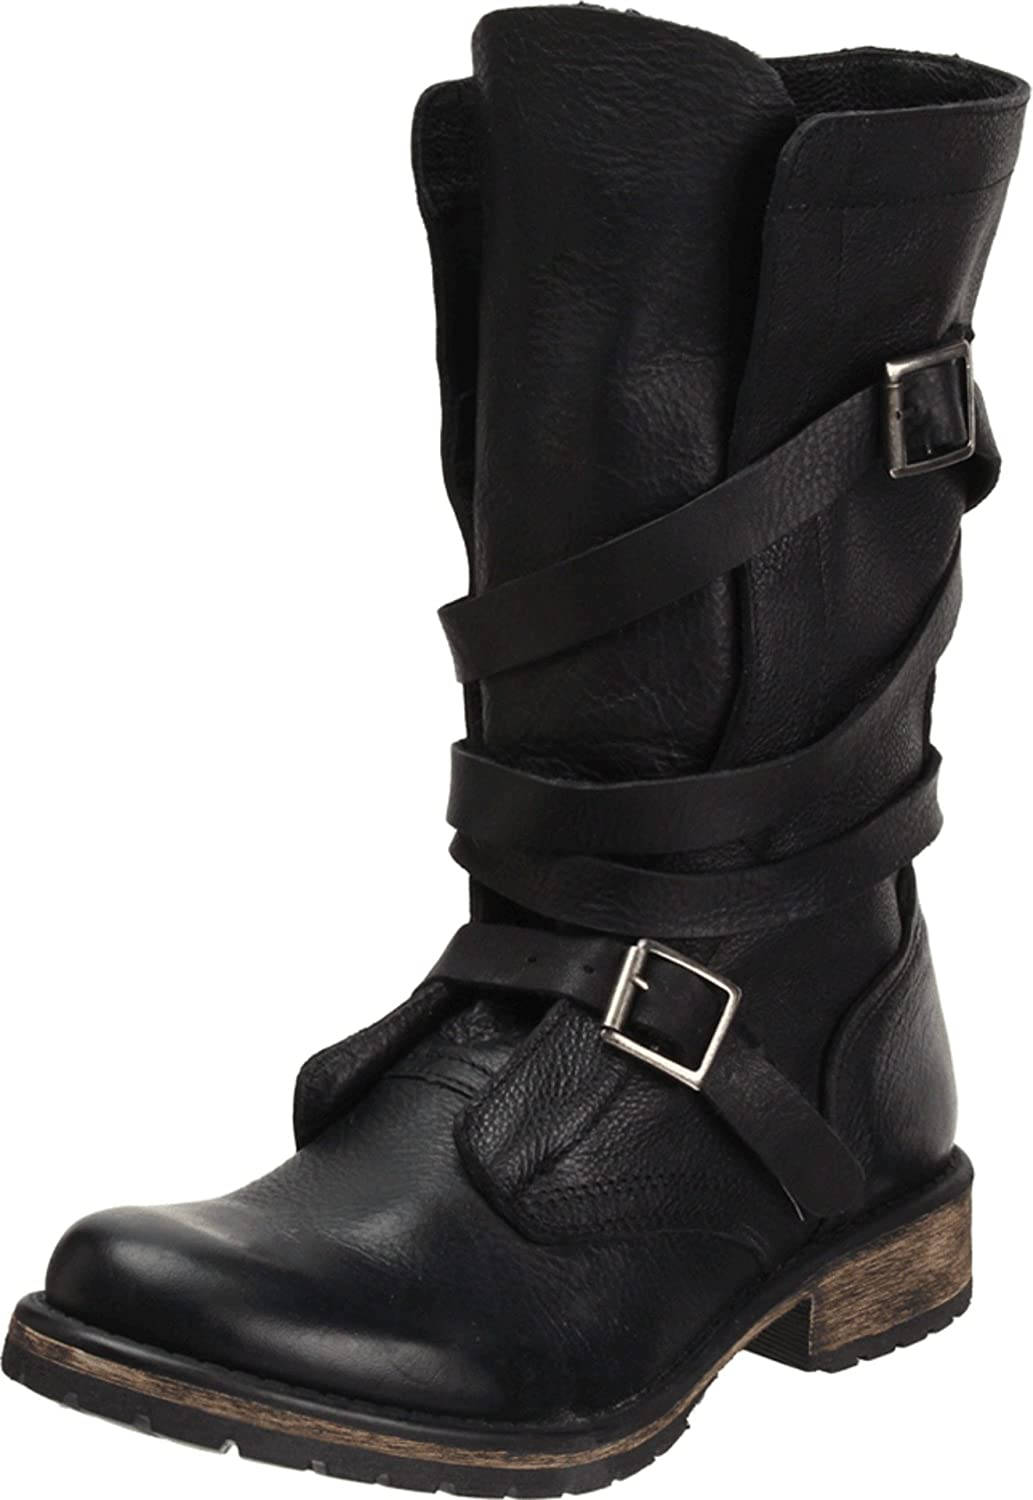 Steve Madden Women's Banddit Boot B0053VNSLO 7 B(M) US|Black Leather